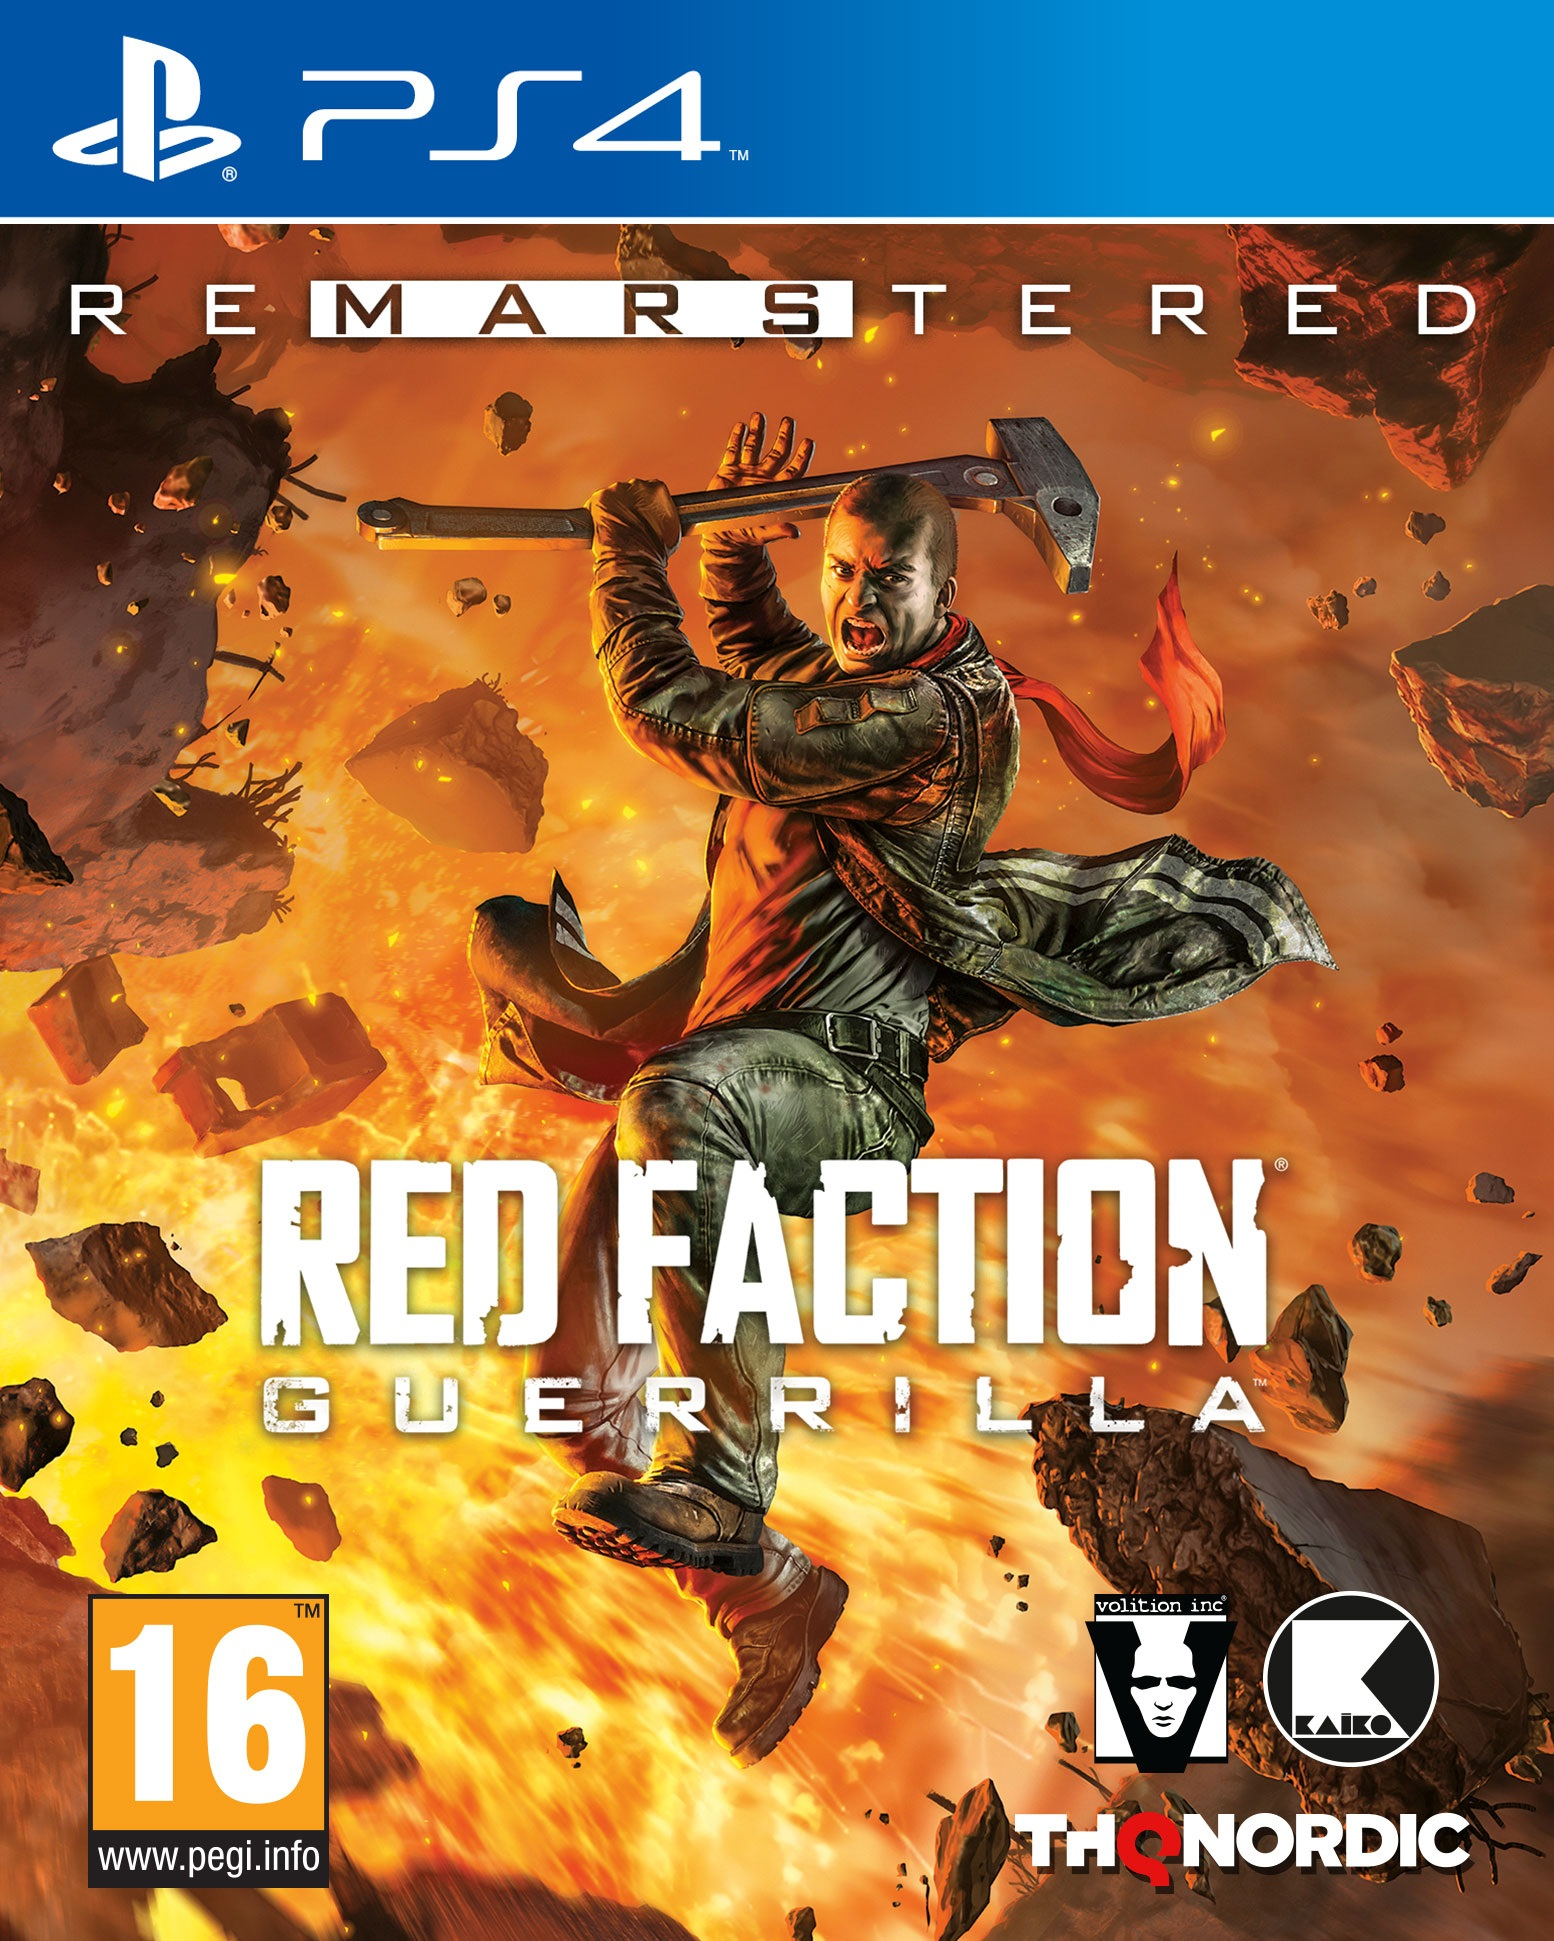 Deep Silver Gioco adatto modello ps 4 - Ps4 Red Faction Guerrilla 1027358